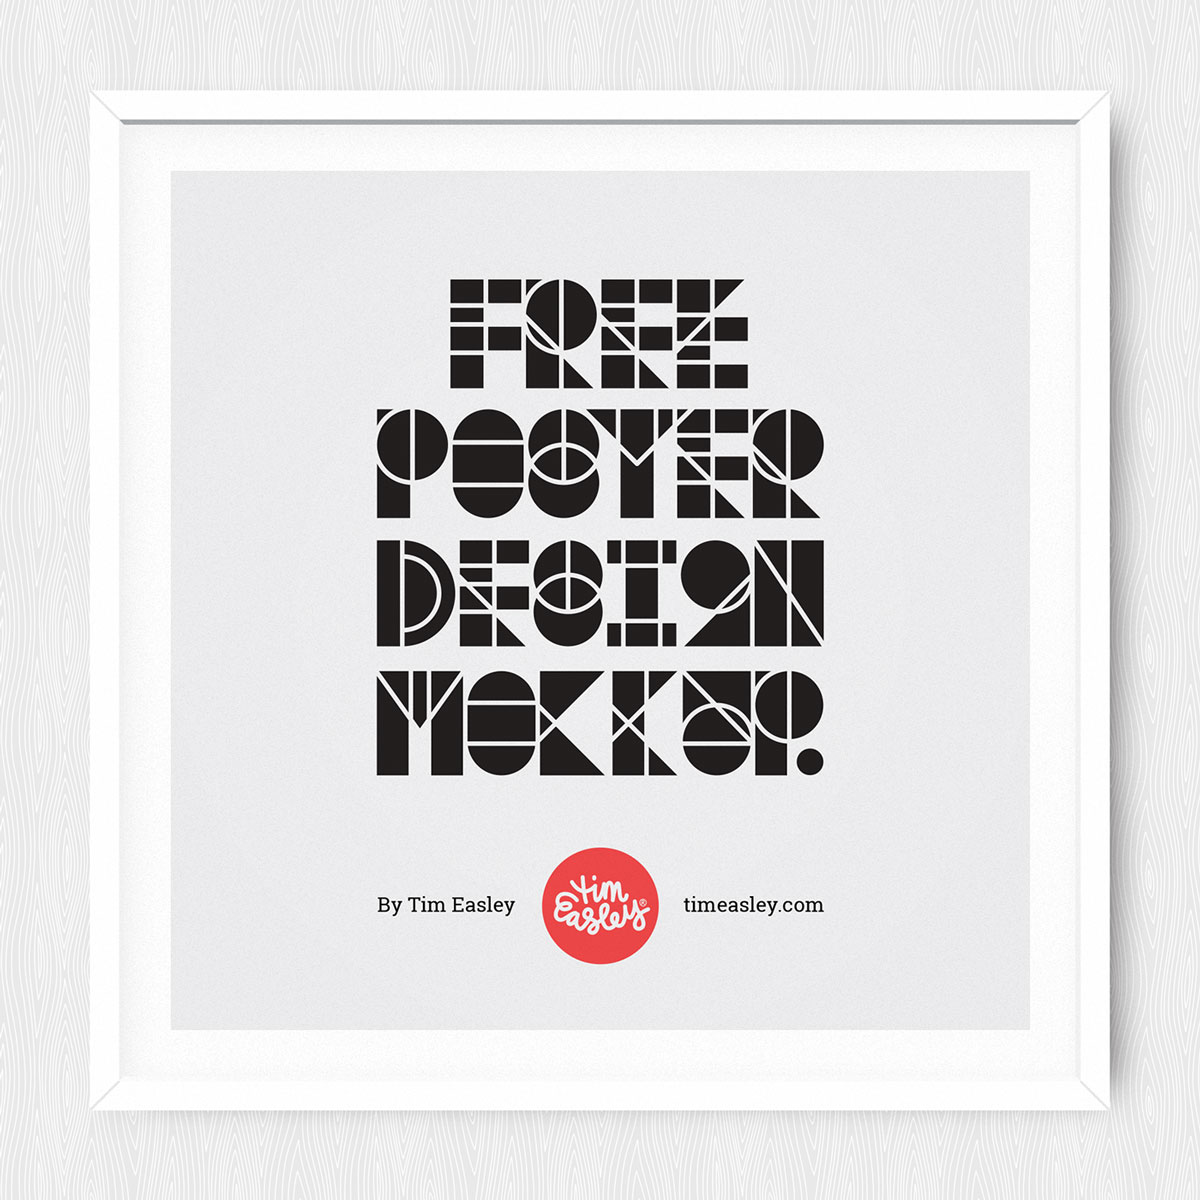 Multipurpose-Poster-Mockups-For-Your-Creative-Poster-Designs-600-5